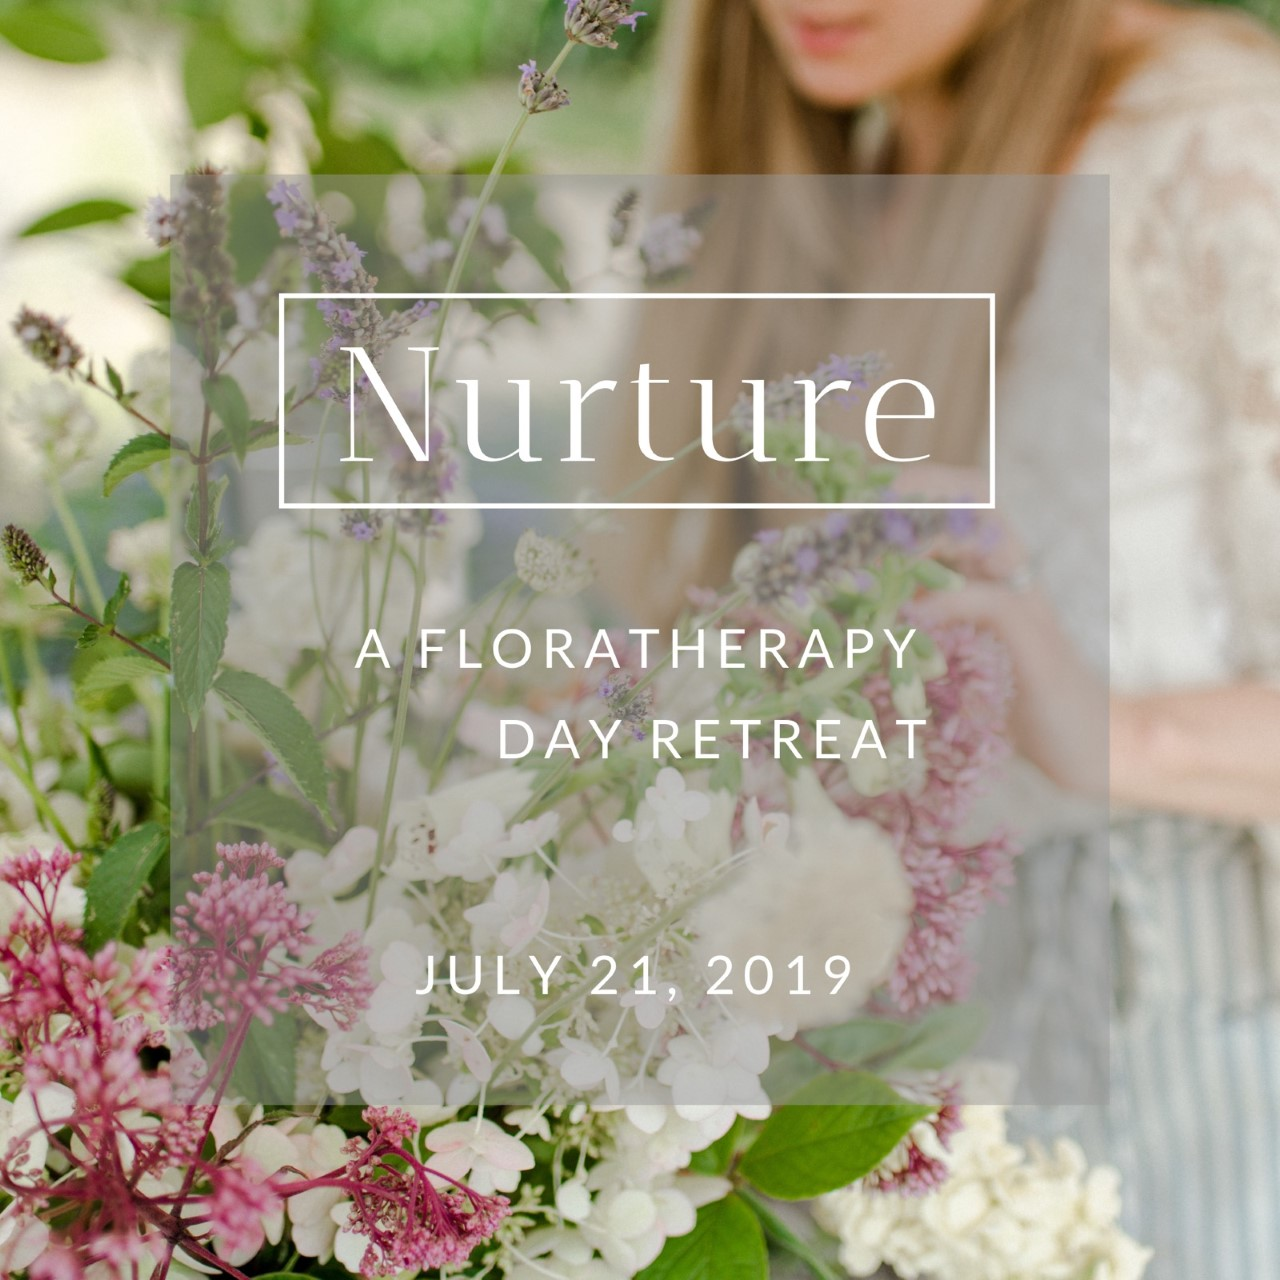 Floral Therapy workshop